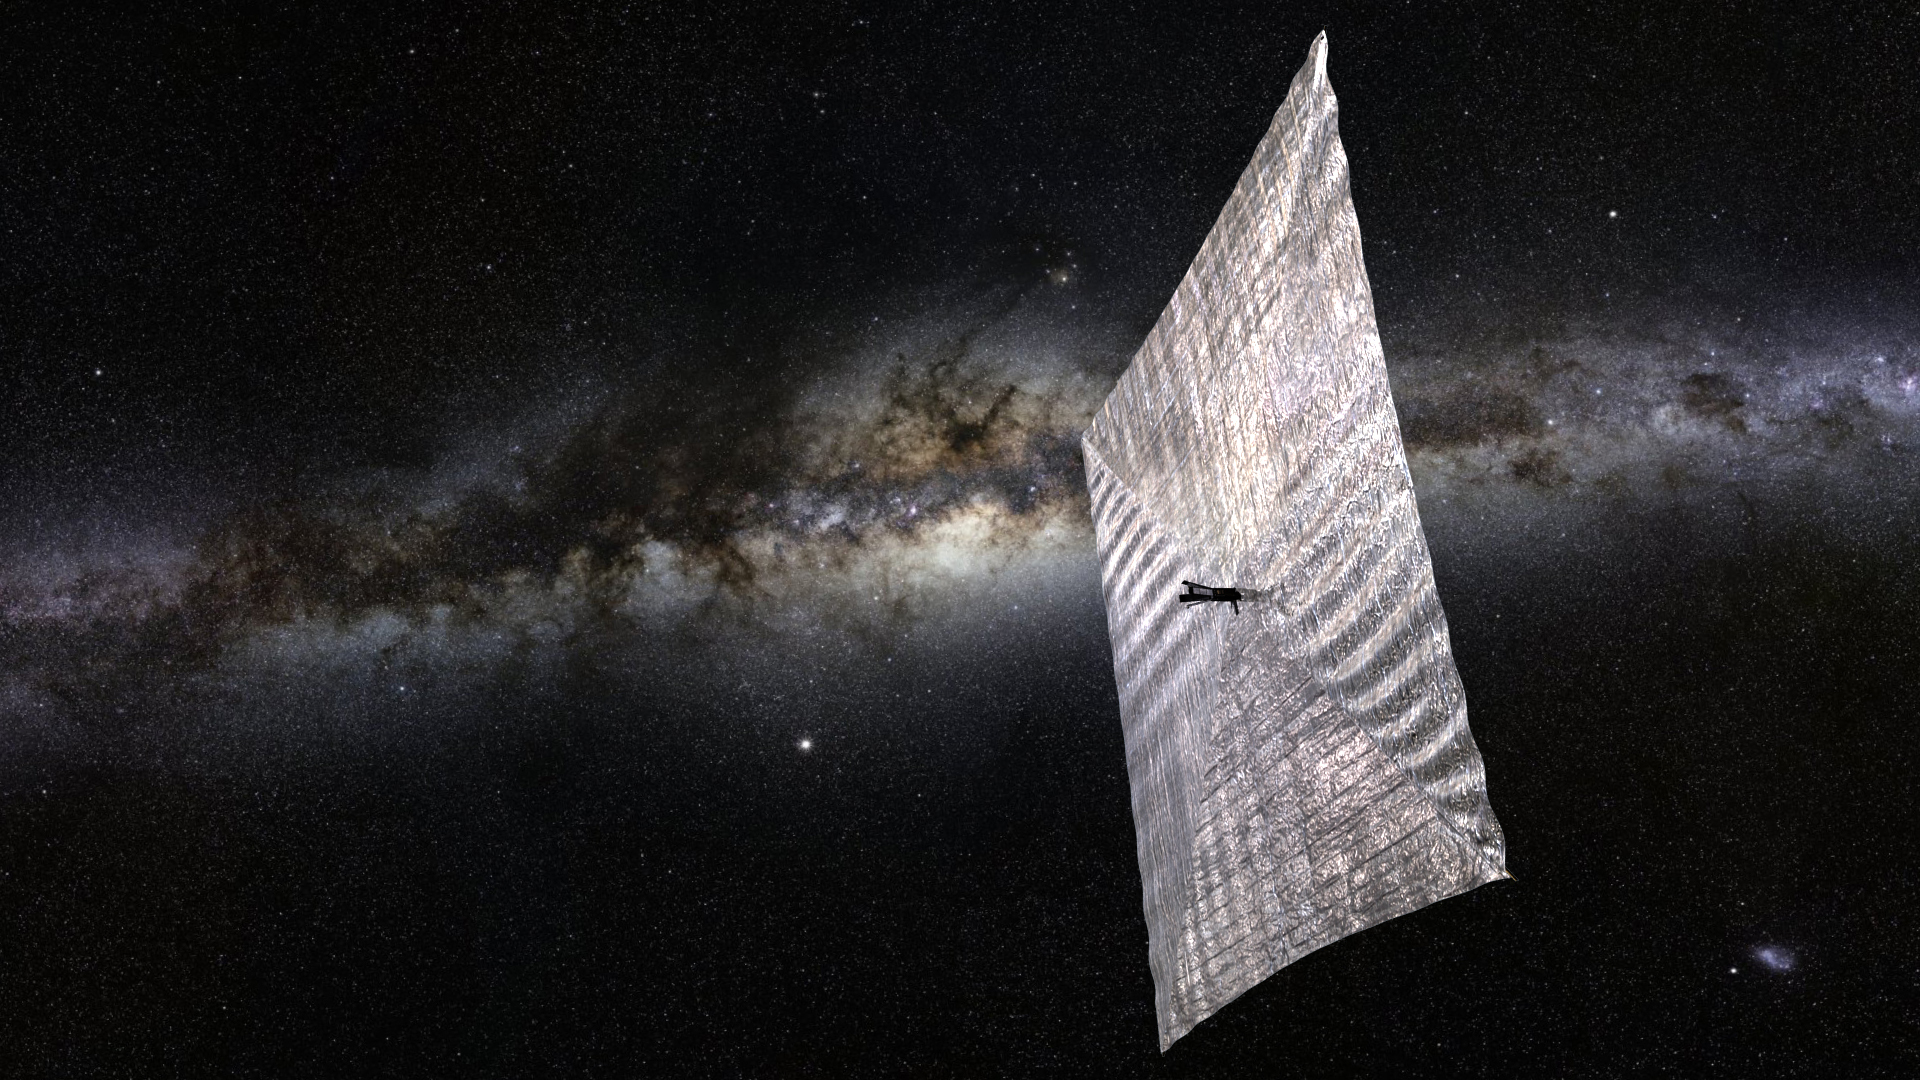 LightSail Spacecraft Wakes Up Again, Deploys Solar Sail